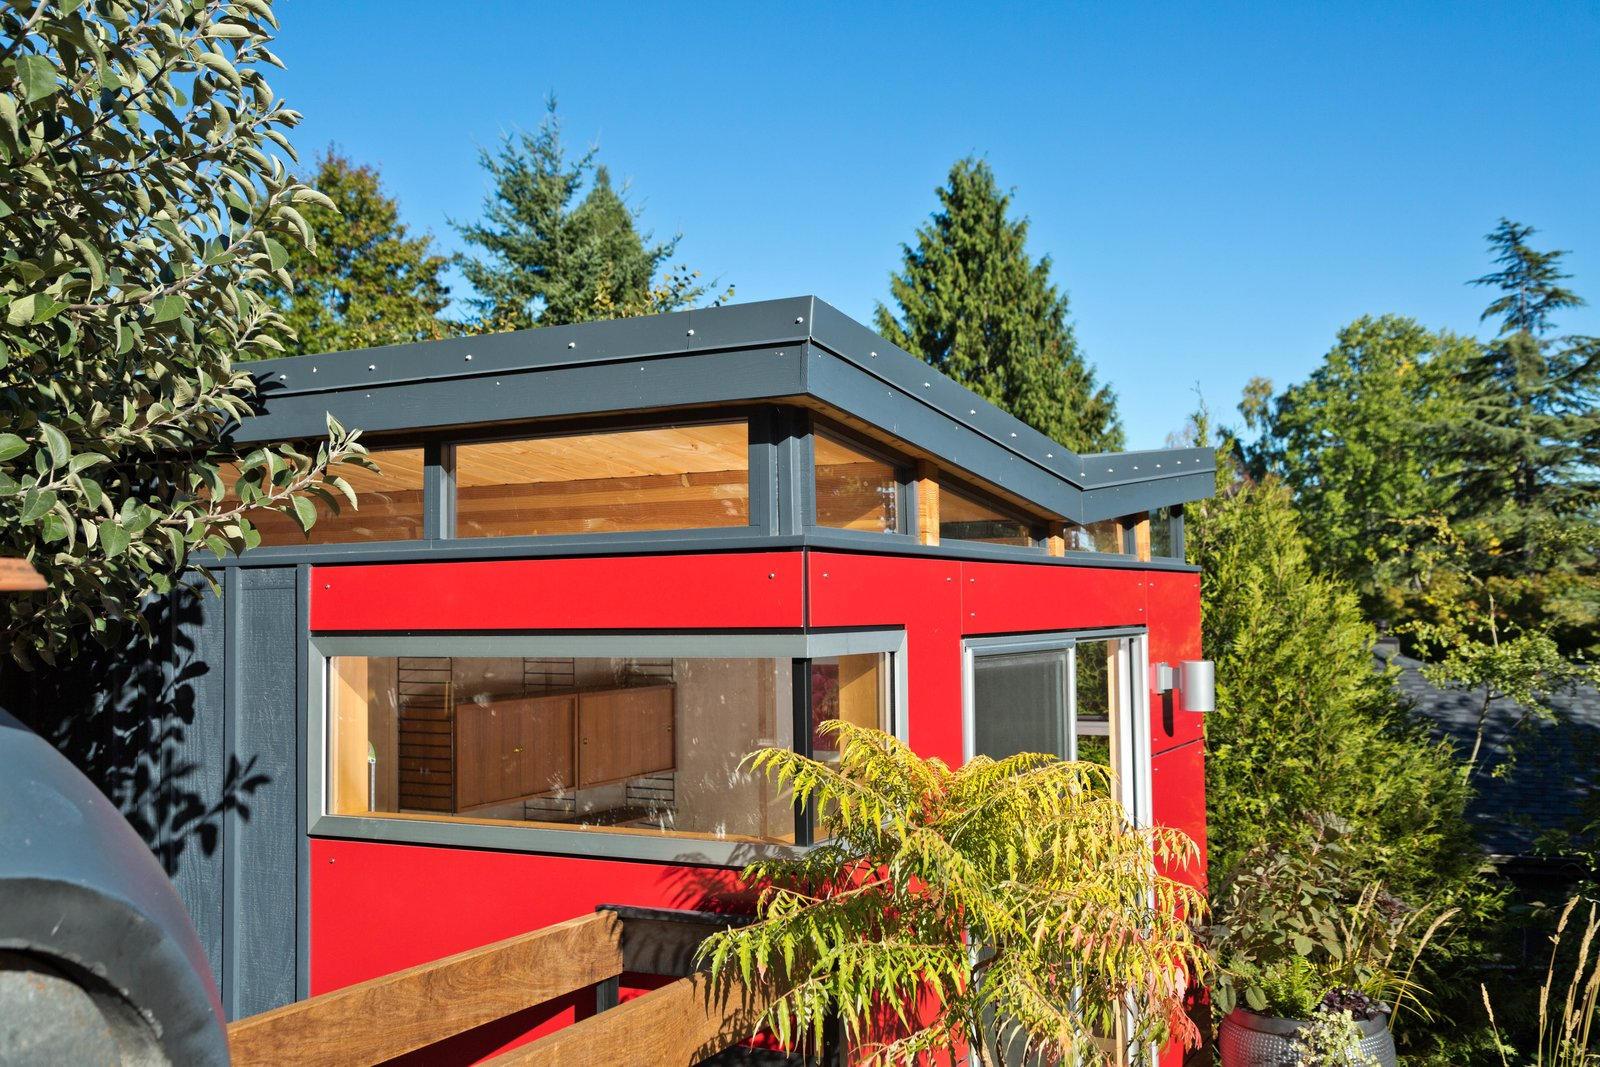 Shed Pictures Design: Modern-Shed Butterfly Roof Modern Home By Modern-Shed, Inc